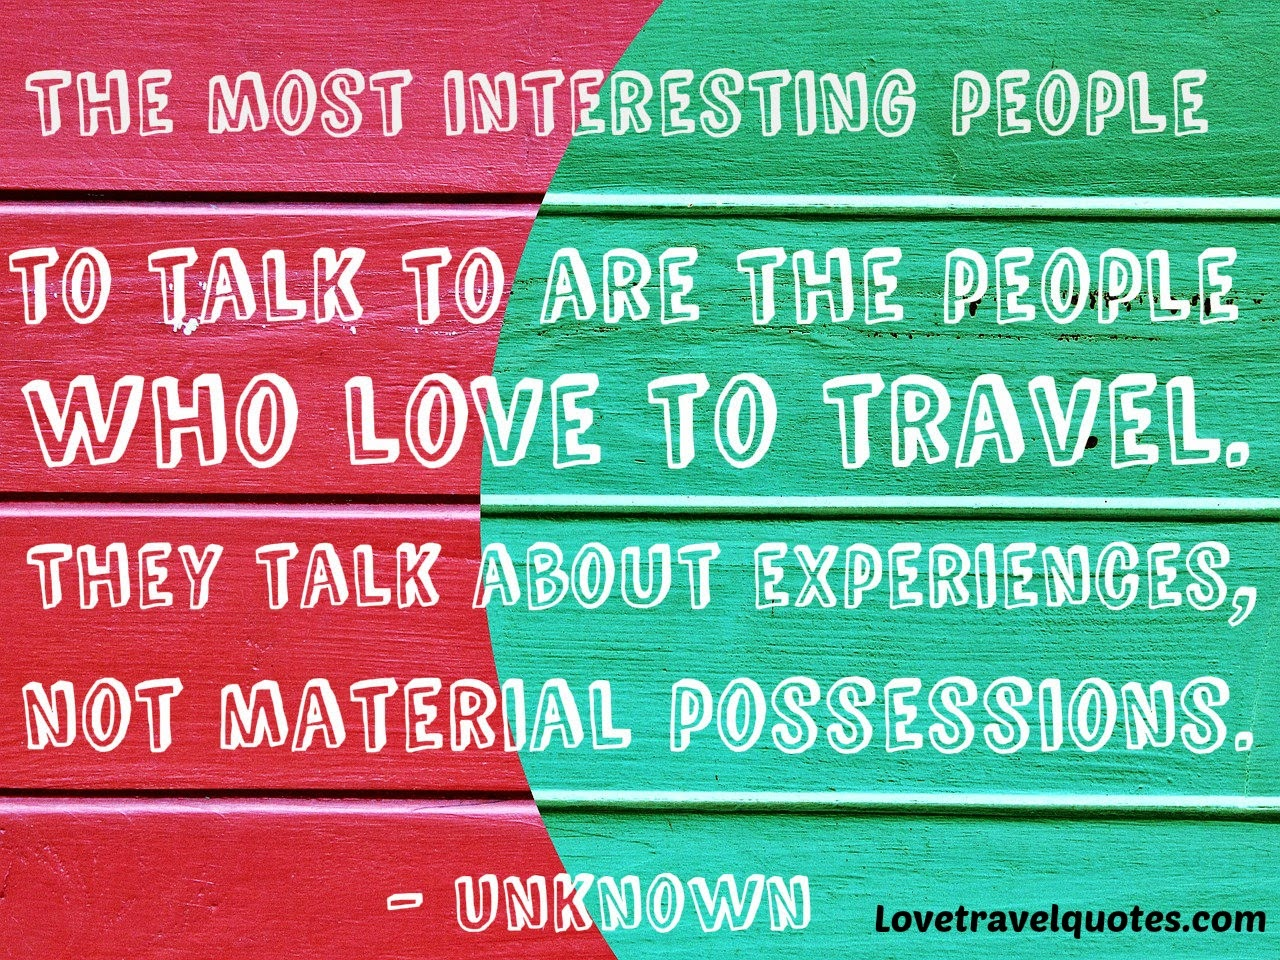 the most interesting people to talk to are the people who love to travel